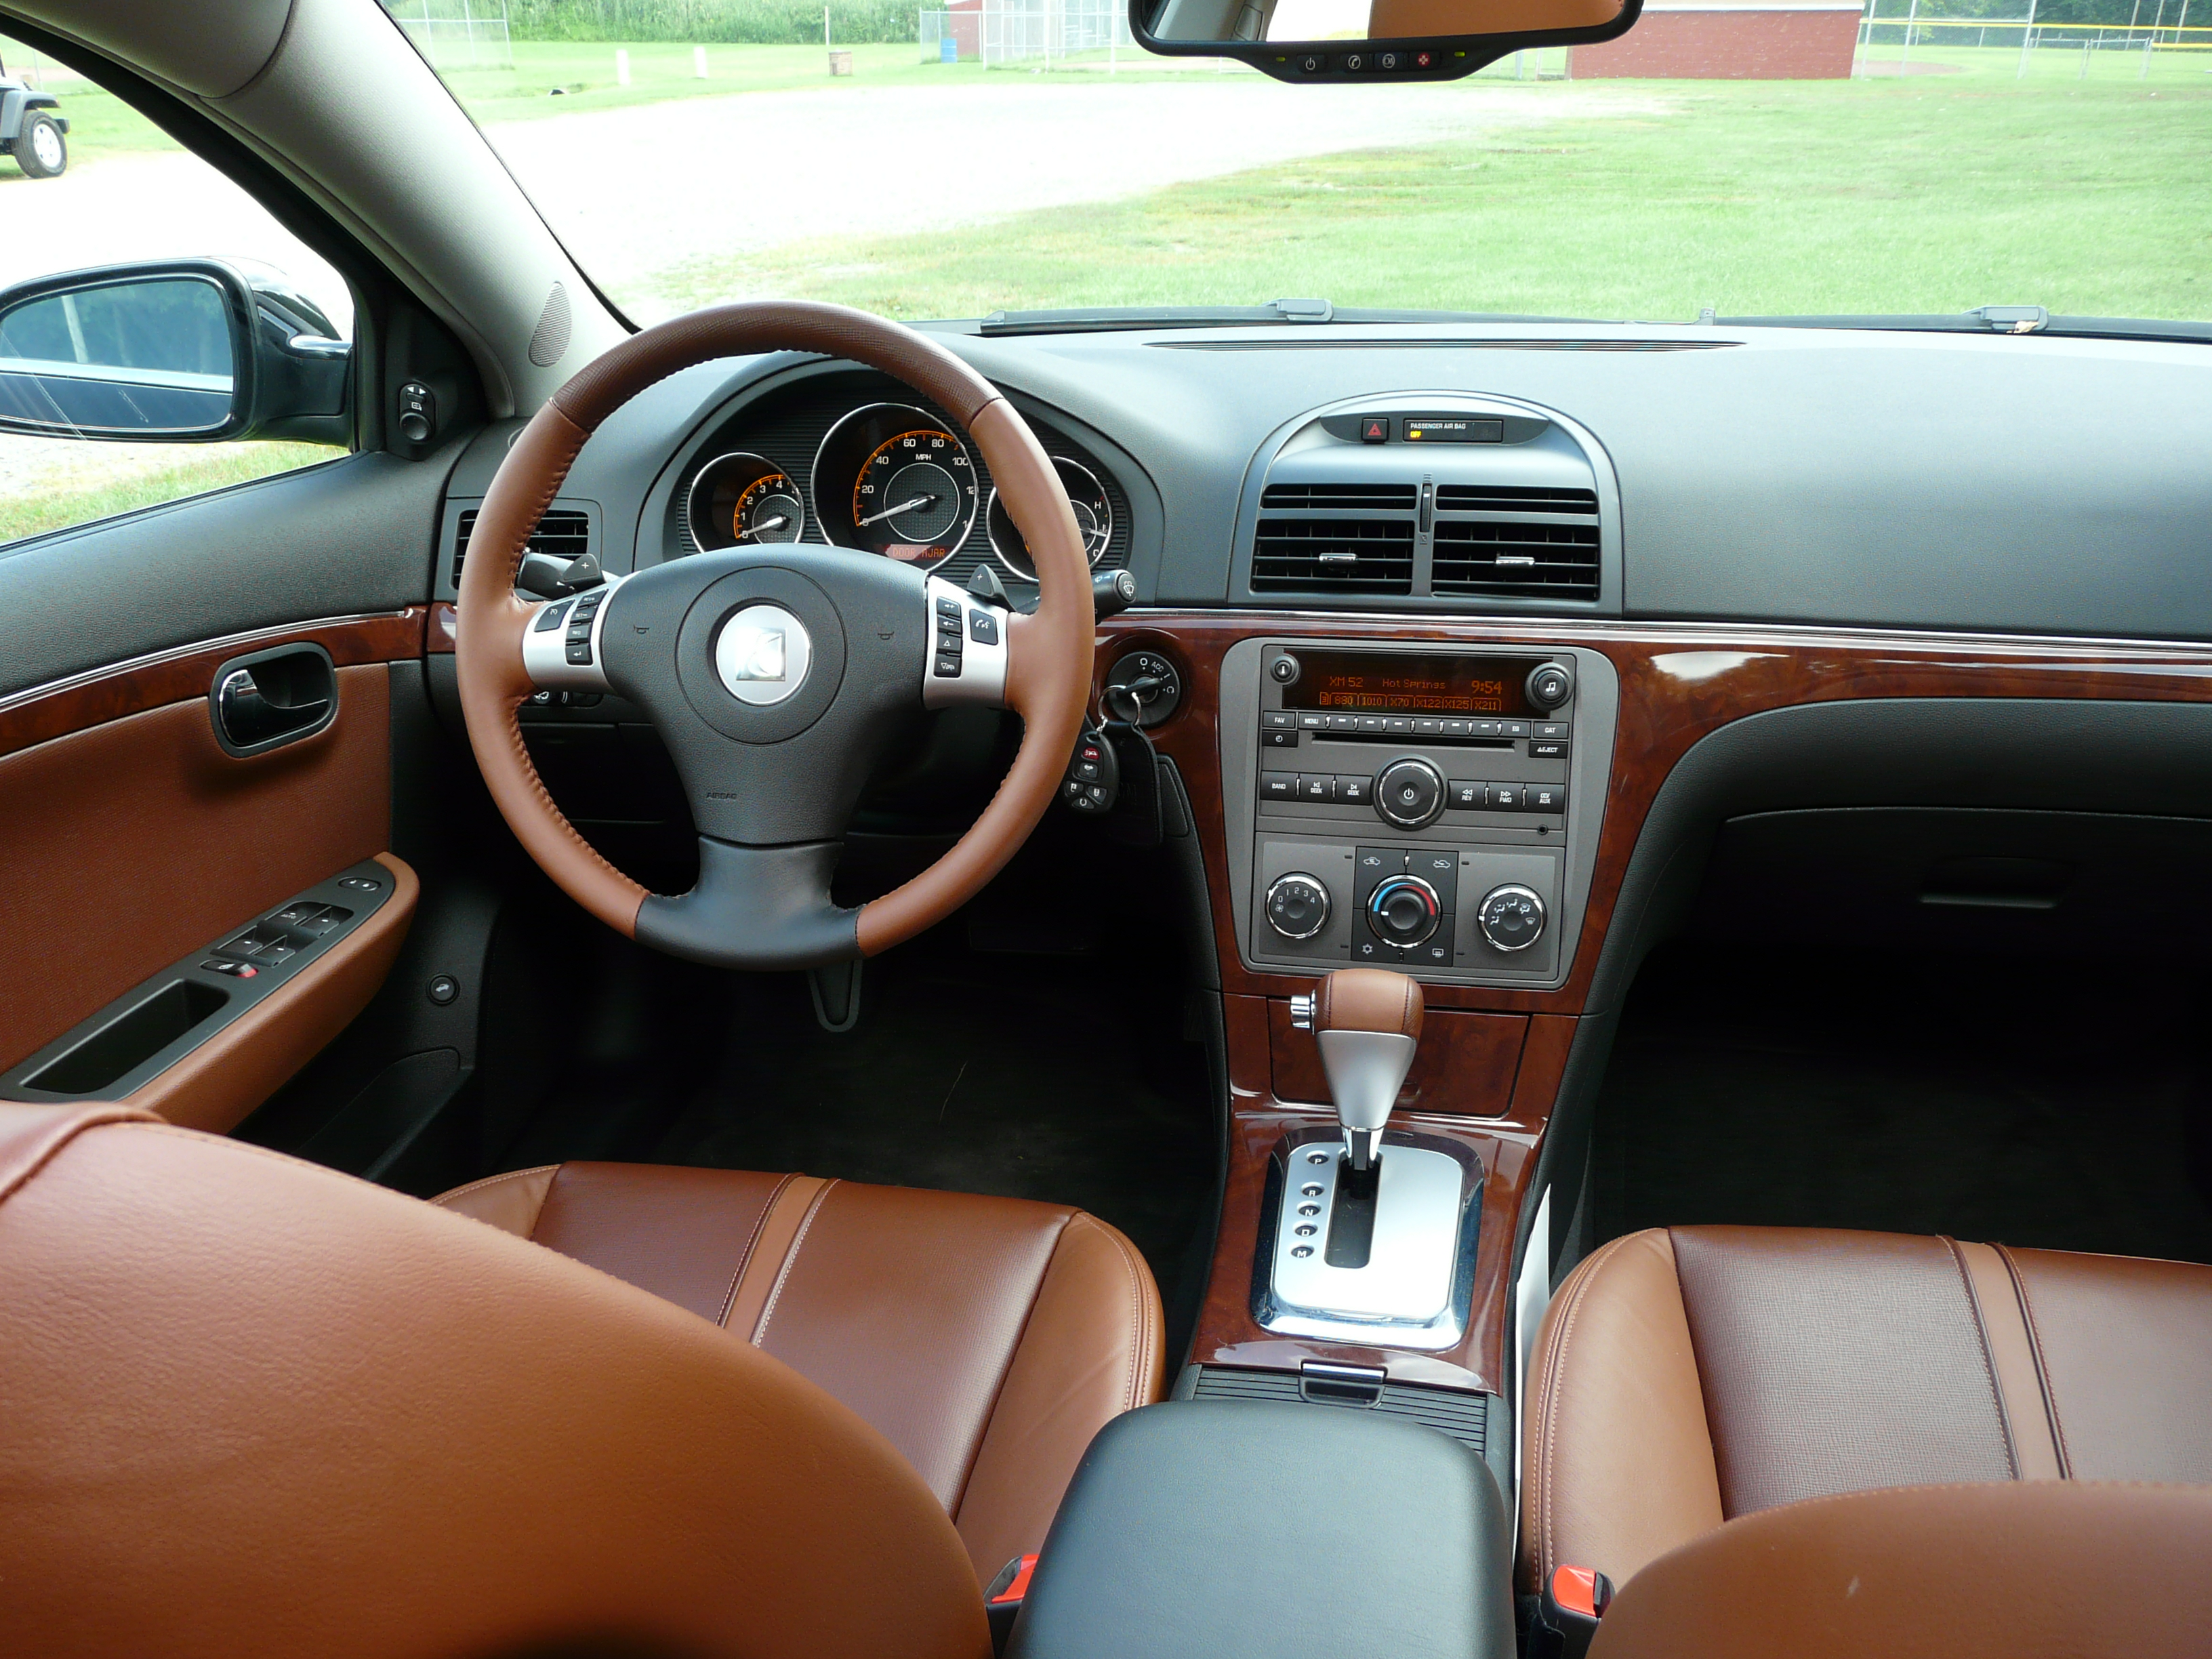 2009 saturn aura information and photos zombiedrive